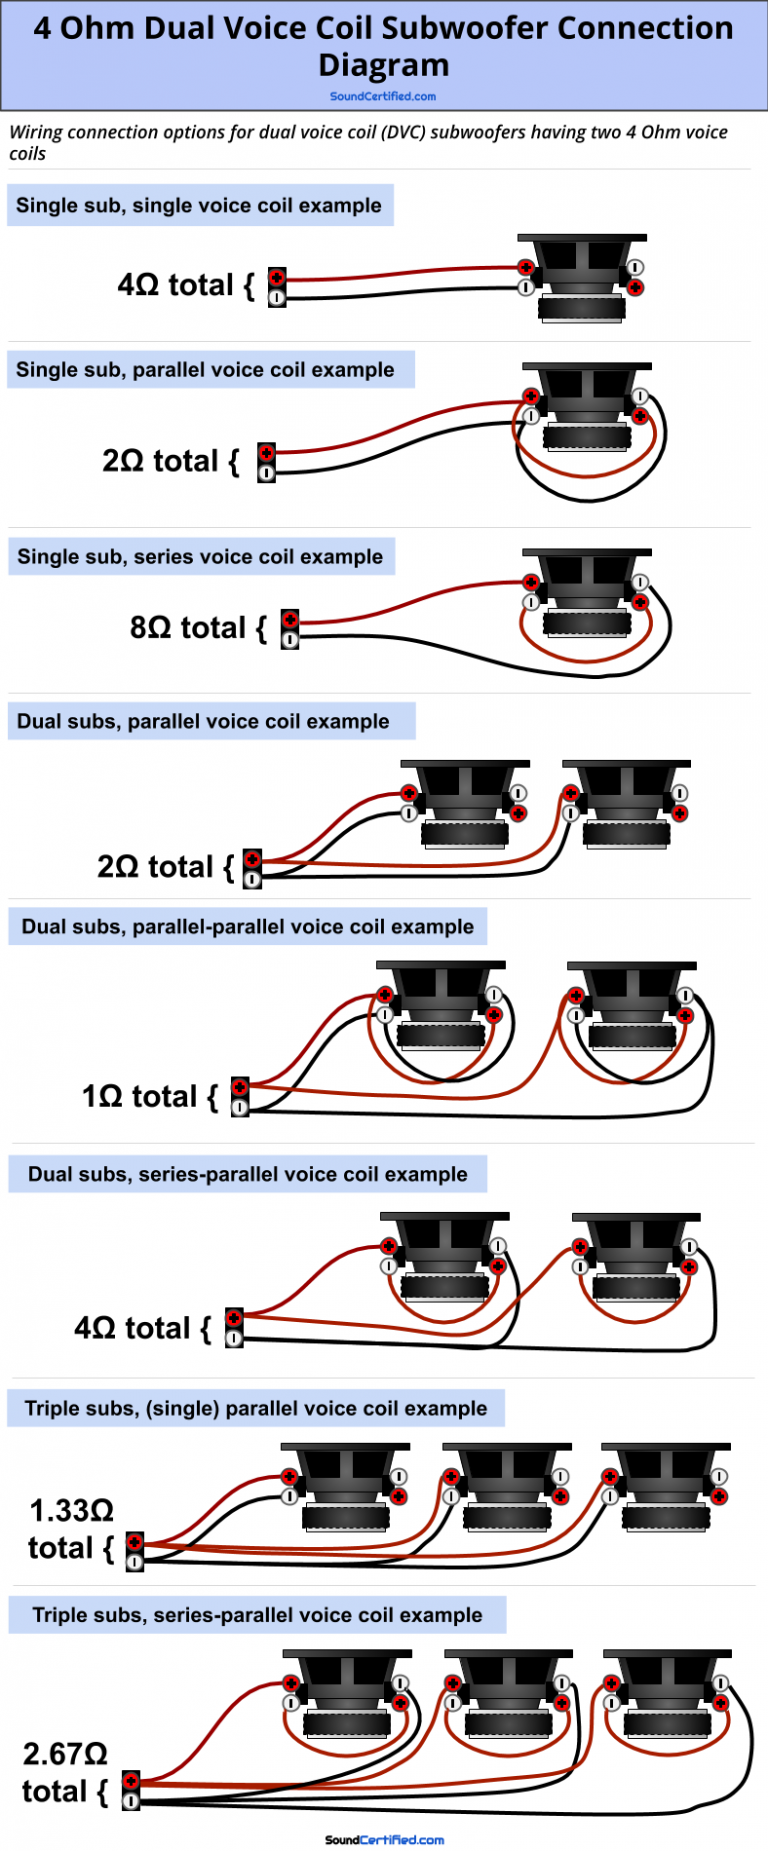 How To Wire A Dual Voice Coil Speaker Subwoofer Wiring Diagrams Subwoofer Wiring Subwoofer Custom Car Audio